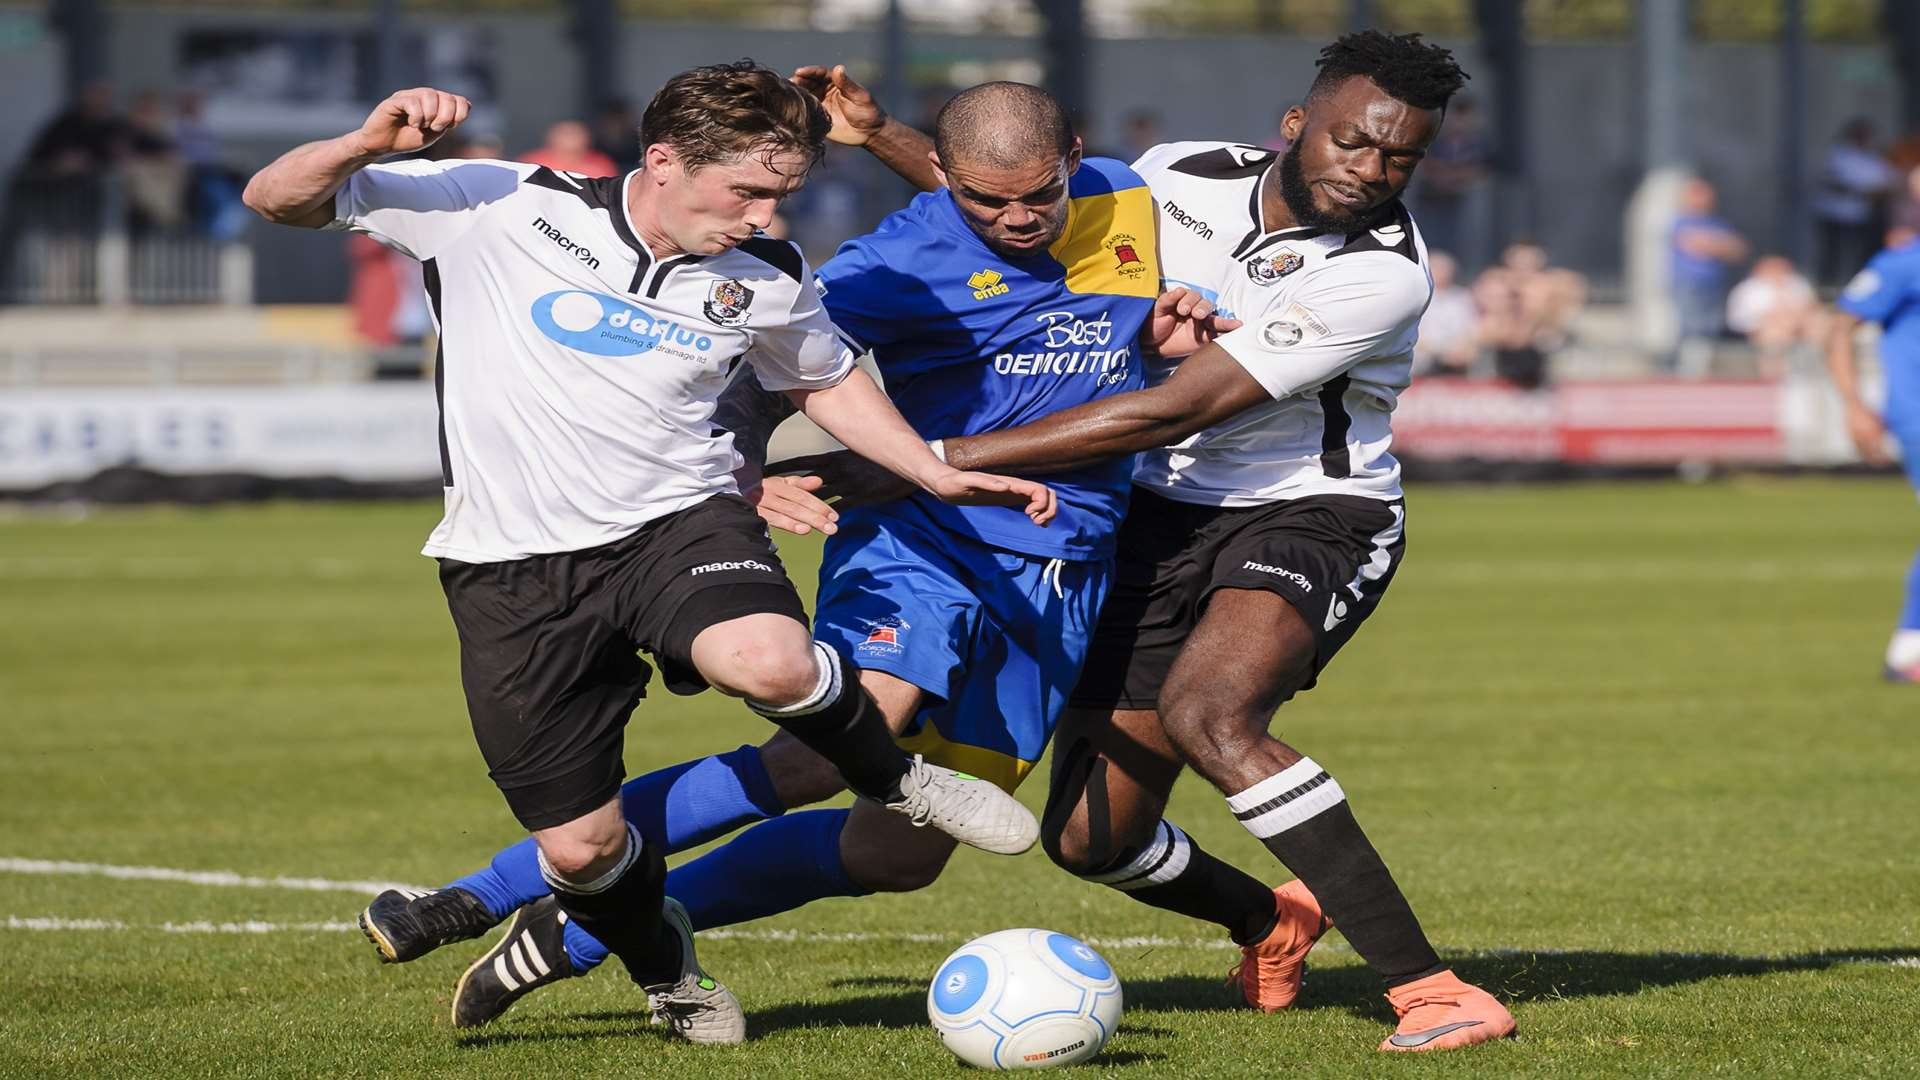 Dartford's Lee Noble and Duane Ofori-Acheampong in action during last week's win over Eastbourne. Picture: Andy Payton